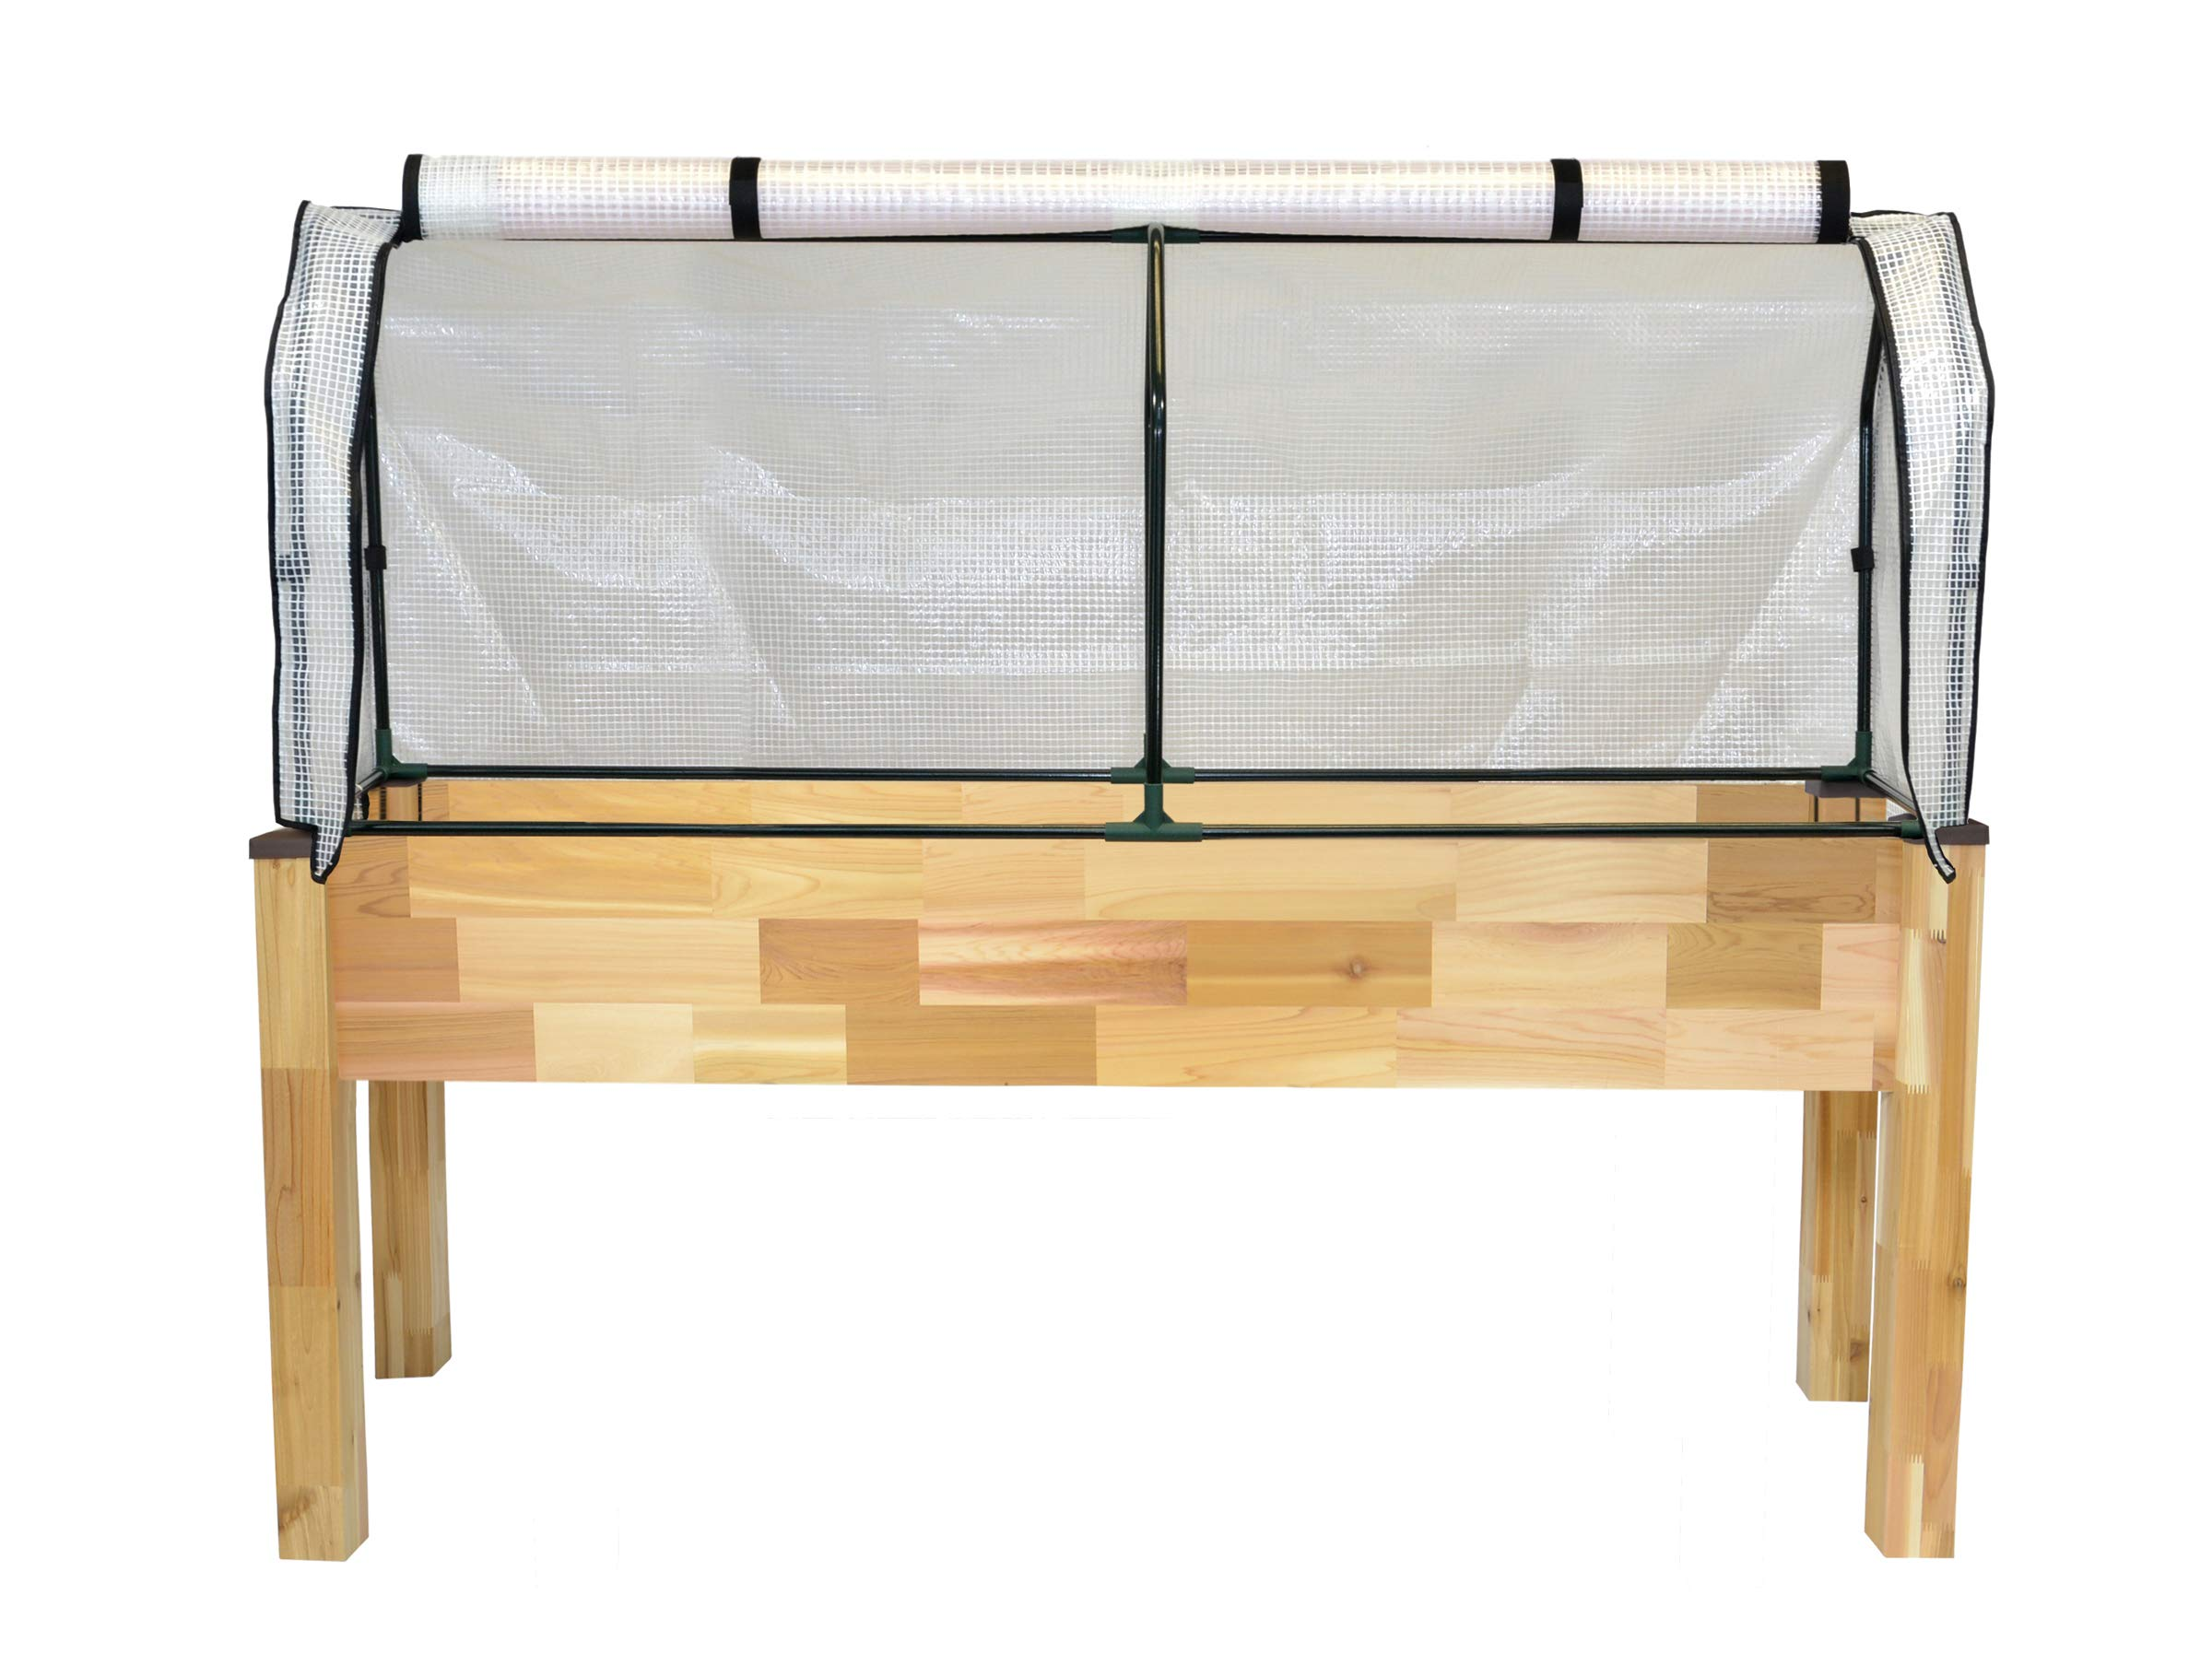 """CedarCraft Elevated Cedar Planter (23"""" x 72"""" x 30''H) + Greenhouse Cover - Complete Raised Garden kit to Grow Tomatoes, Veggies & Herbs. Greenhouse extends Growing Season, Protects Plants"""